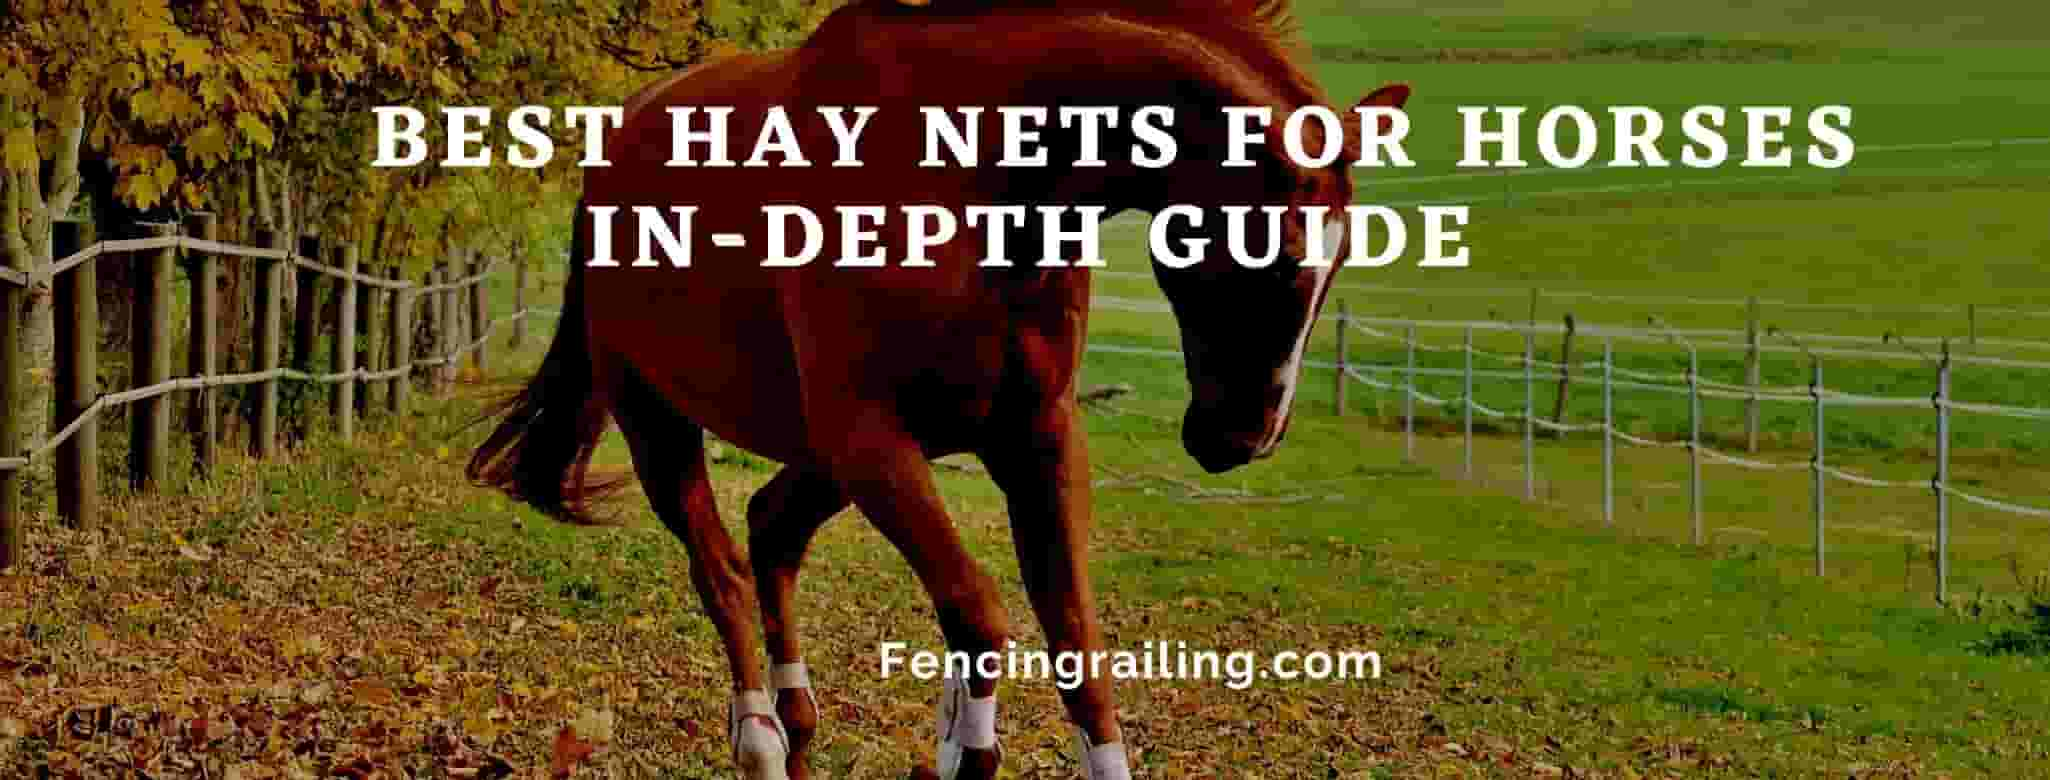 best hay nets for horses